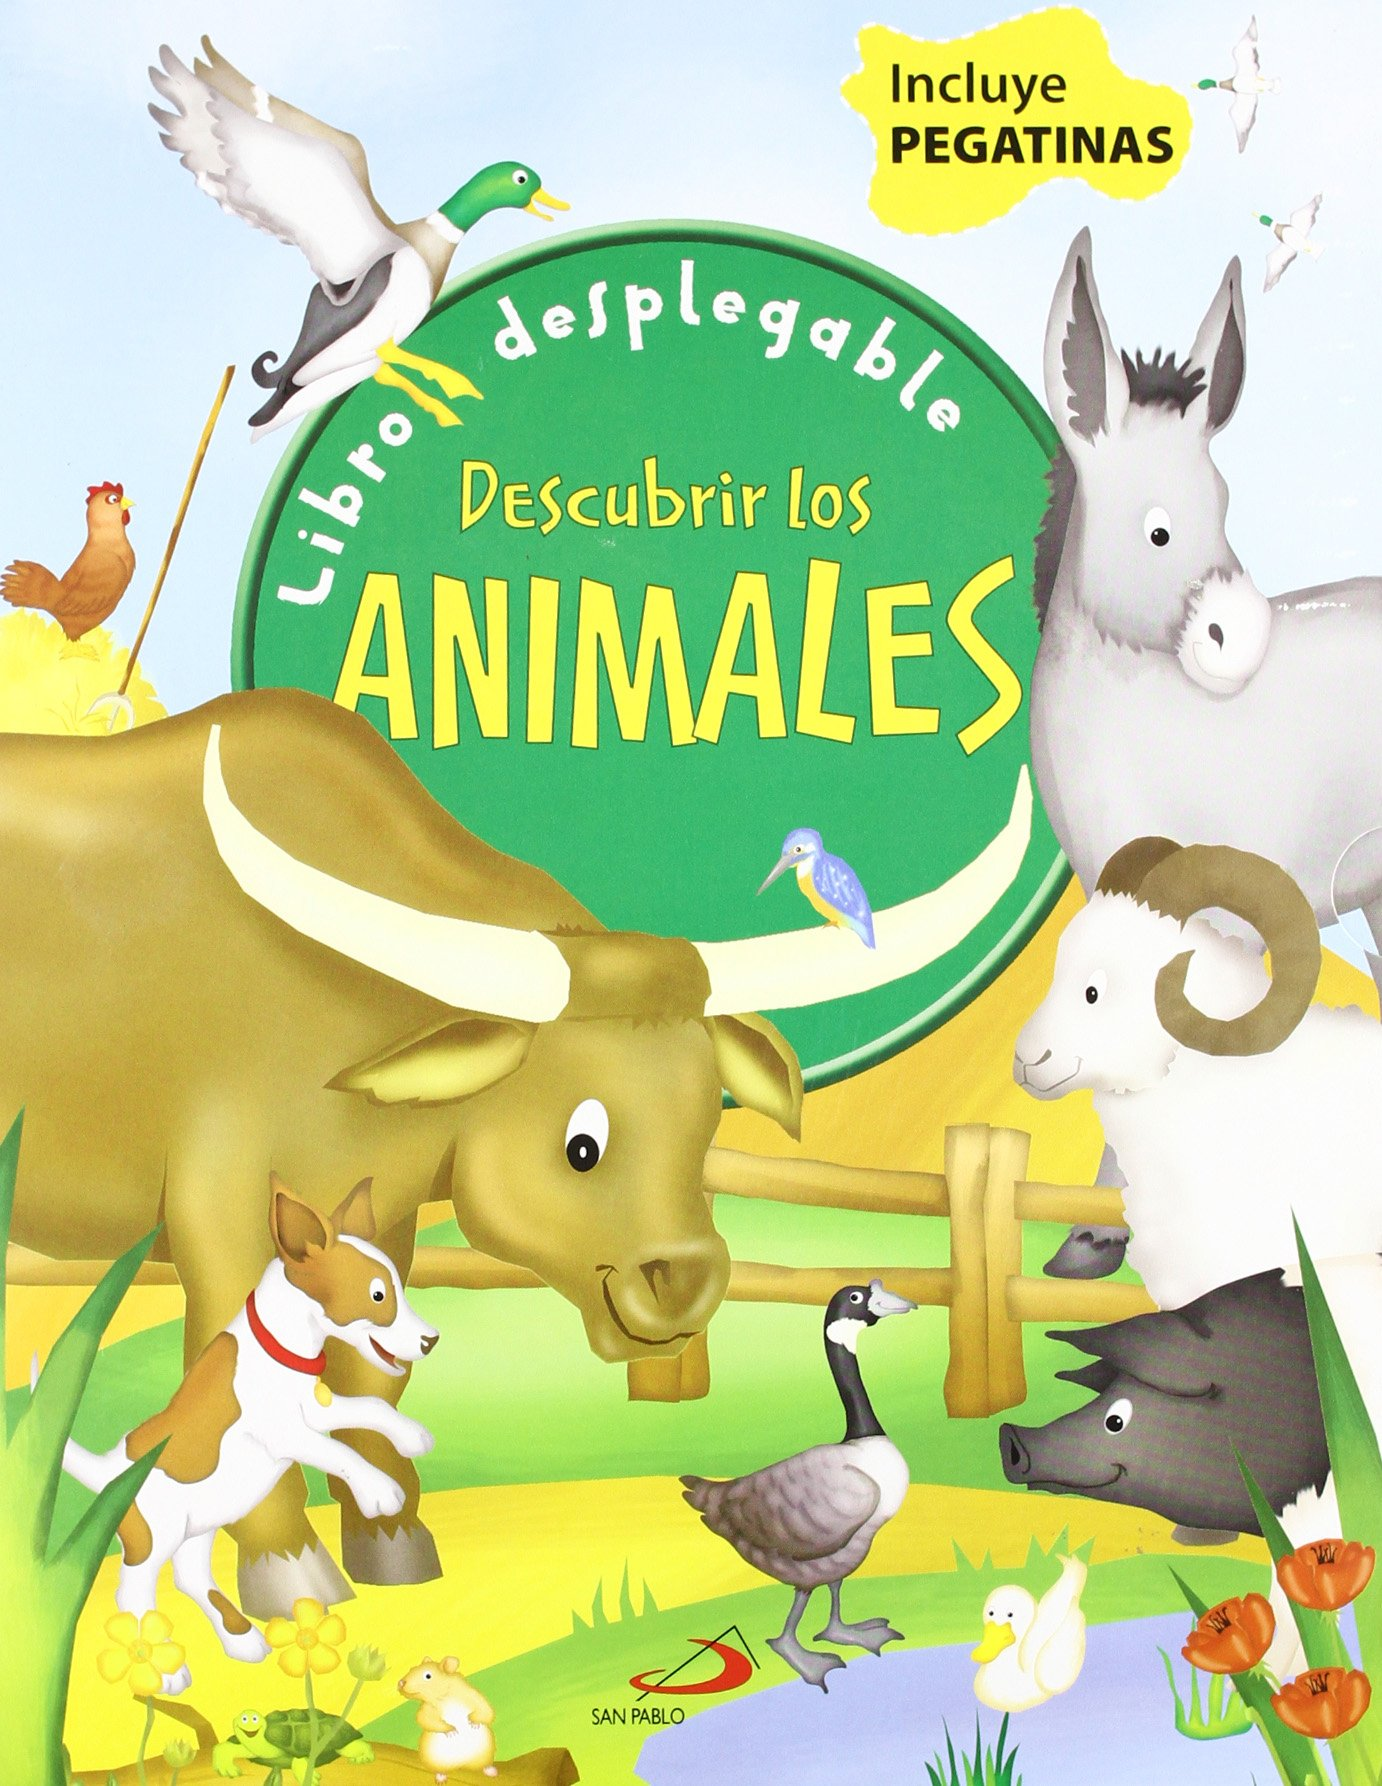 Descubrir los animales. Libros desplegable (Spanish) Hardcover